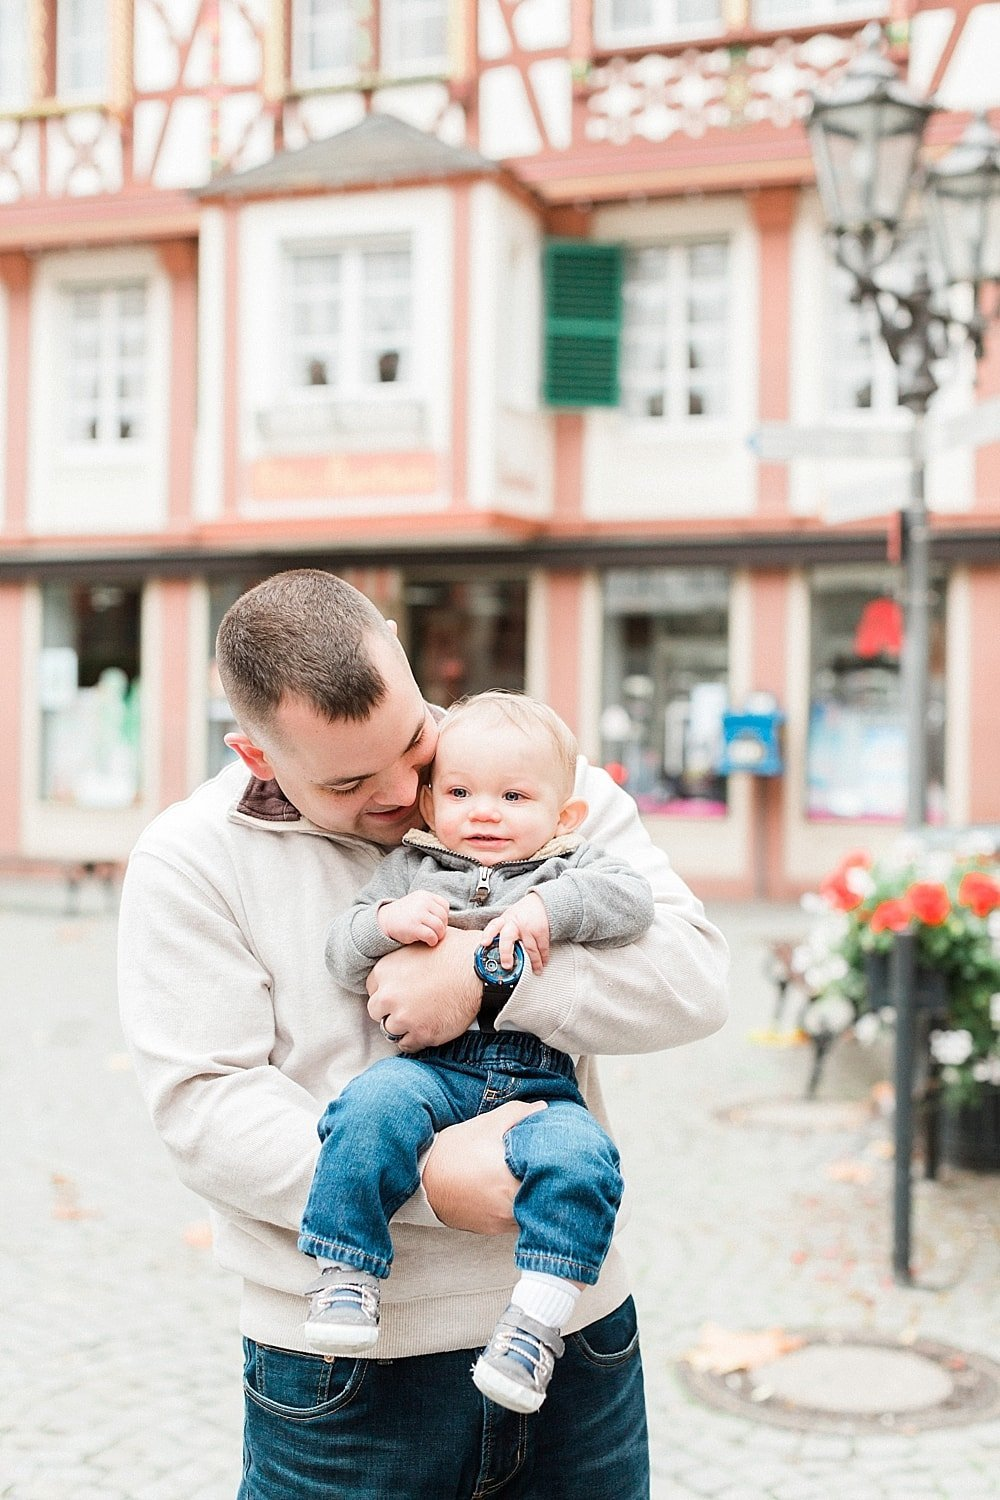 Destination family session photographed in Bernkastel, Germany by Alicia Yarrish Photography